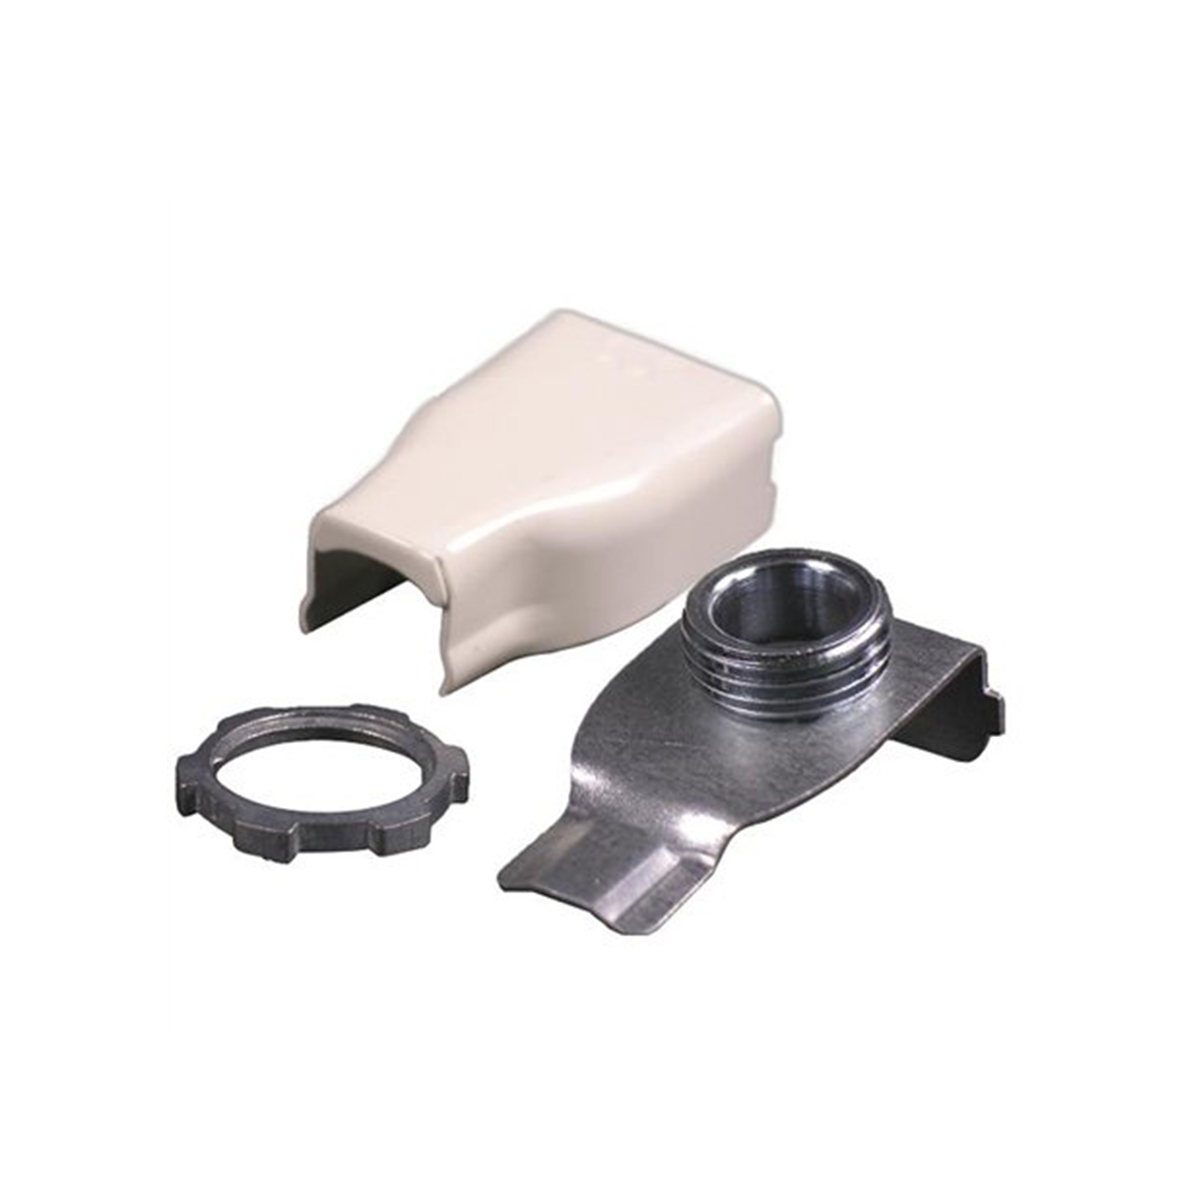 WIREMOLD LEGRAND V5783 RACEWAY MALE ELBOW BOX CONNECTOR STEEL, IVORY ...